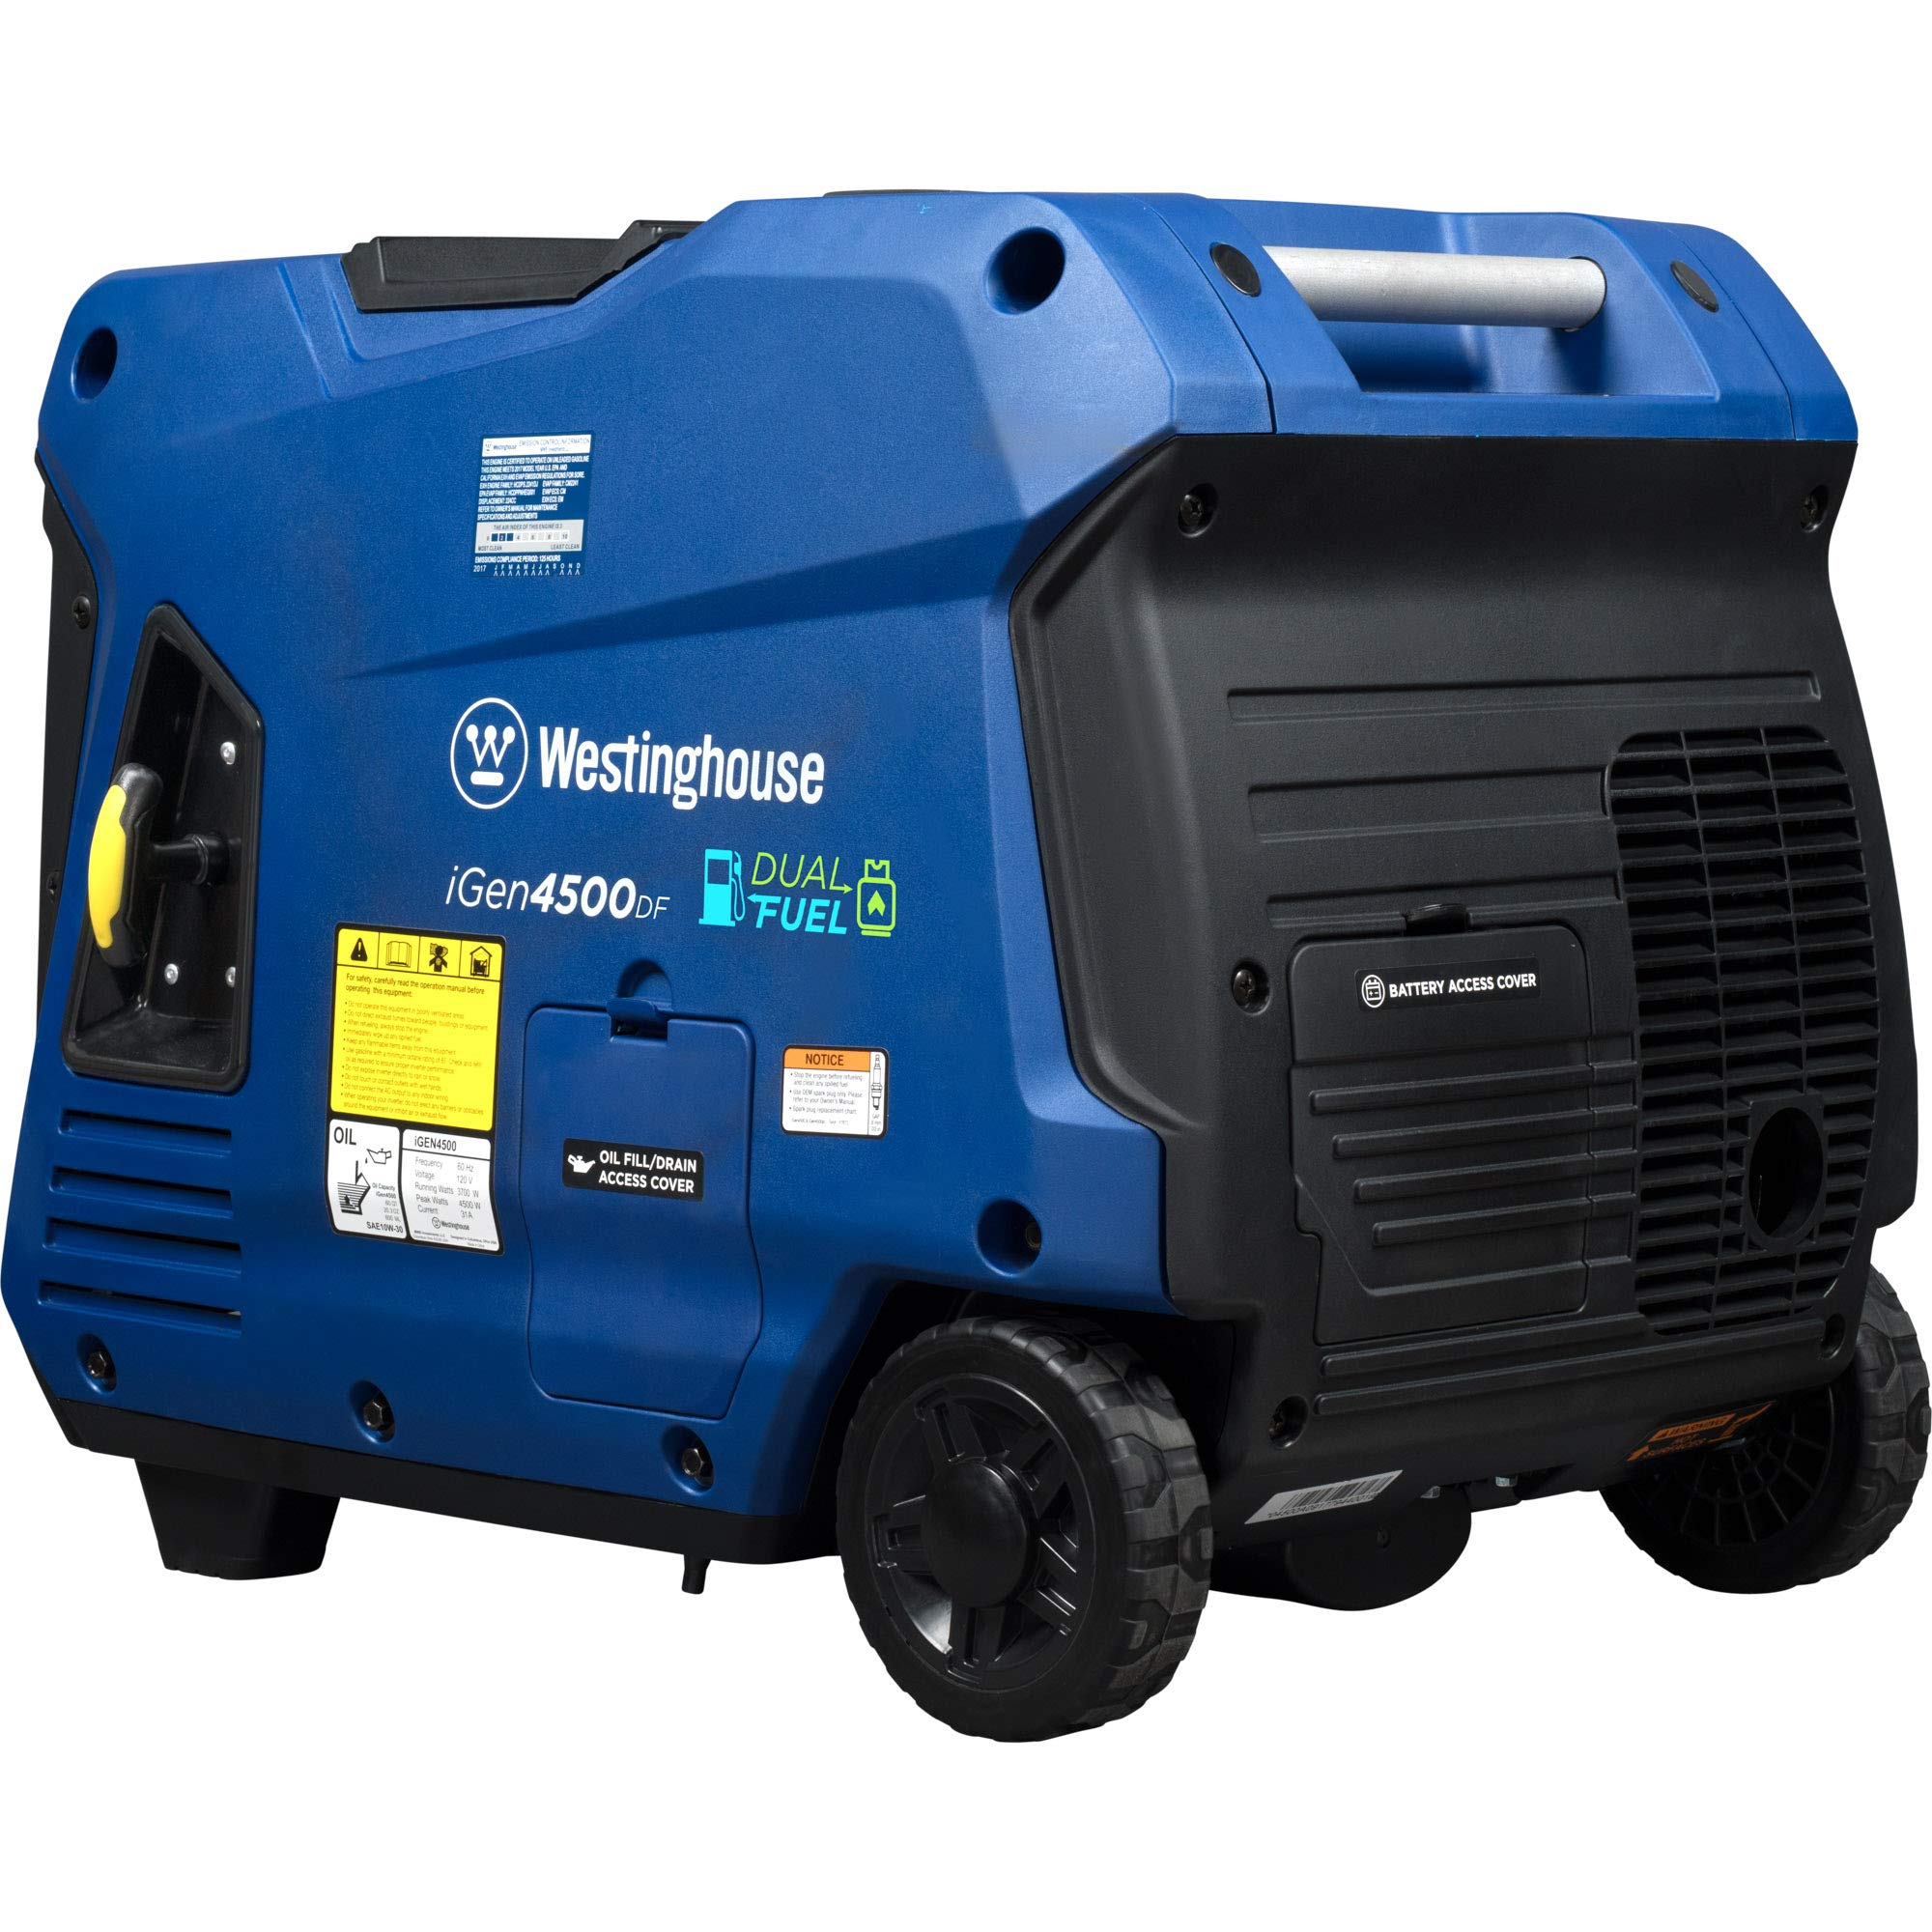 Westinghouse iGen4500DF Dual Fuel Inverter Generator - 3700 Rated Watts & 4500 Peak Watts - Gas &Propane Powered - Electric Start - CARB Compliant by Westinghouse (Image #2)